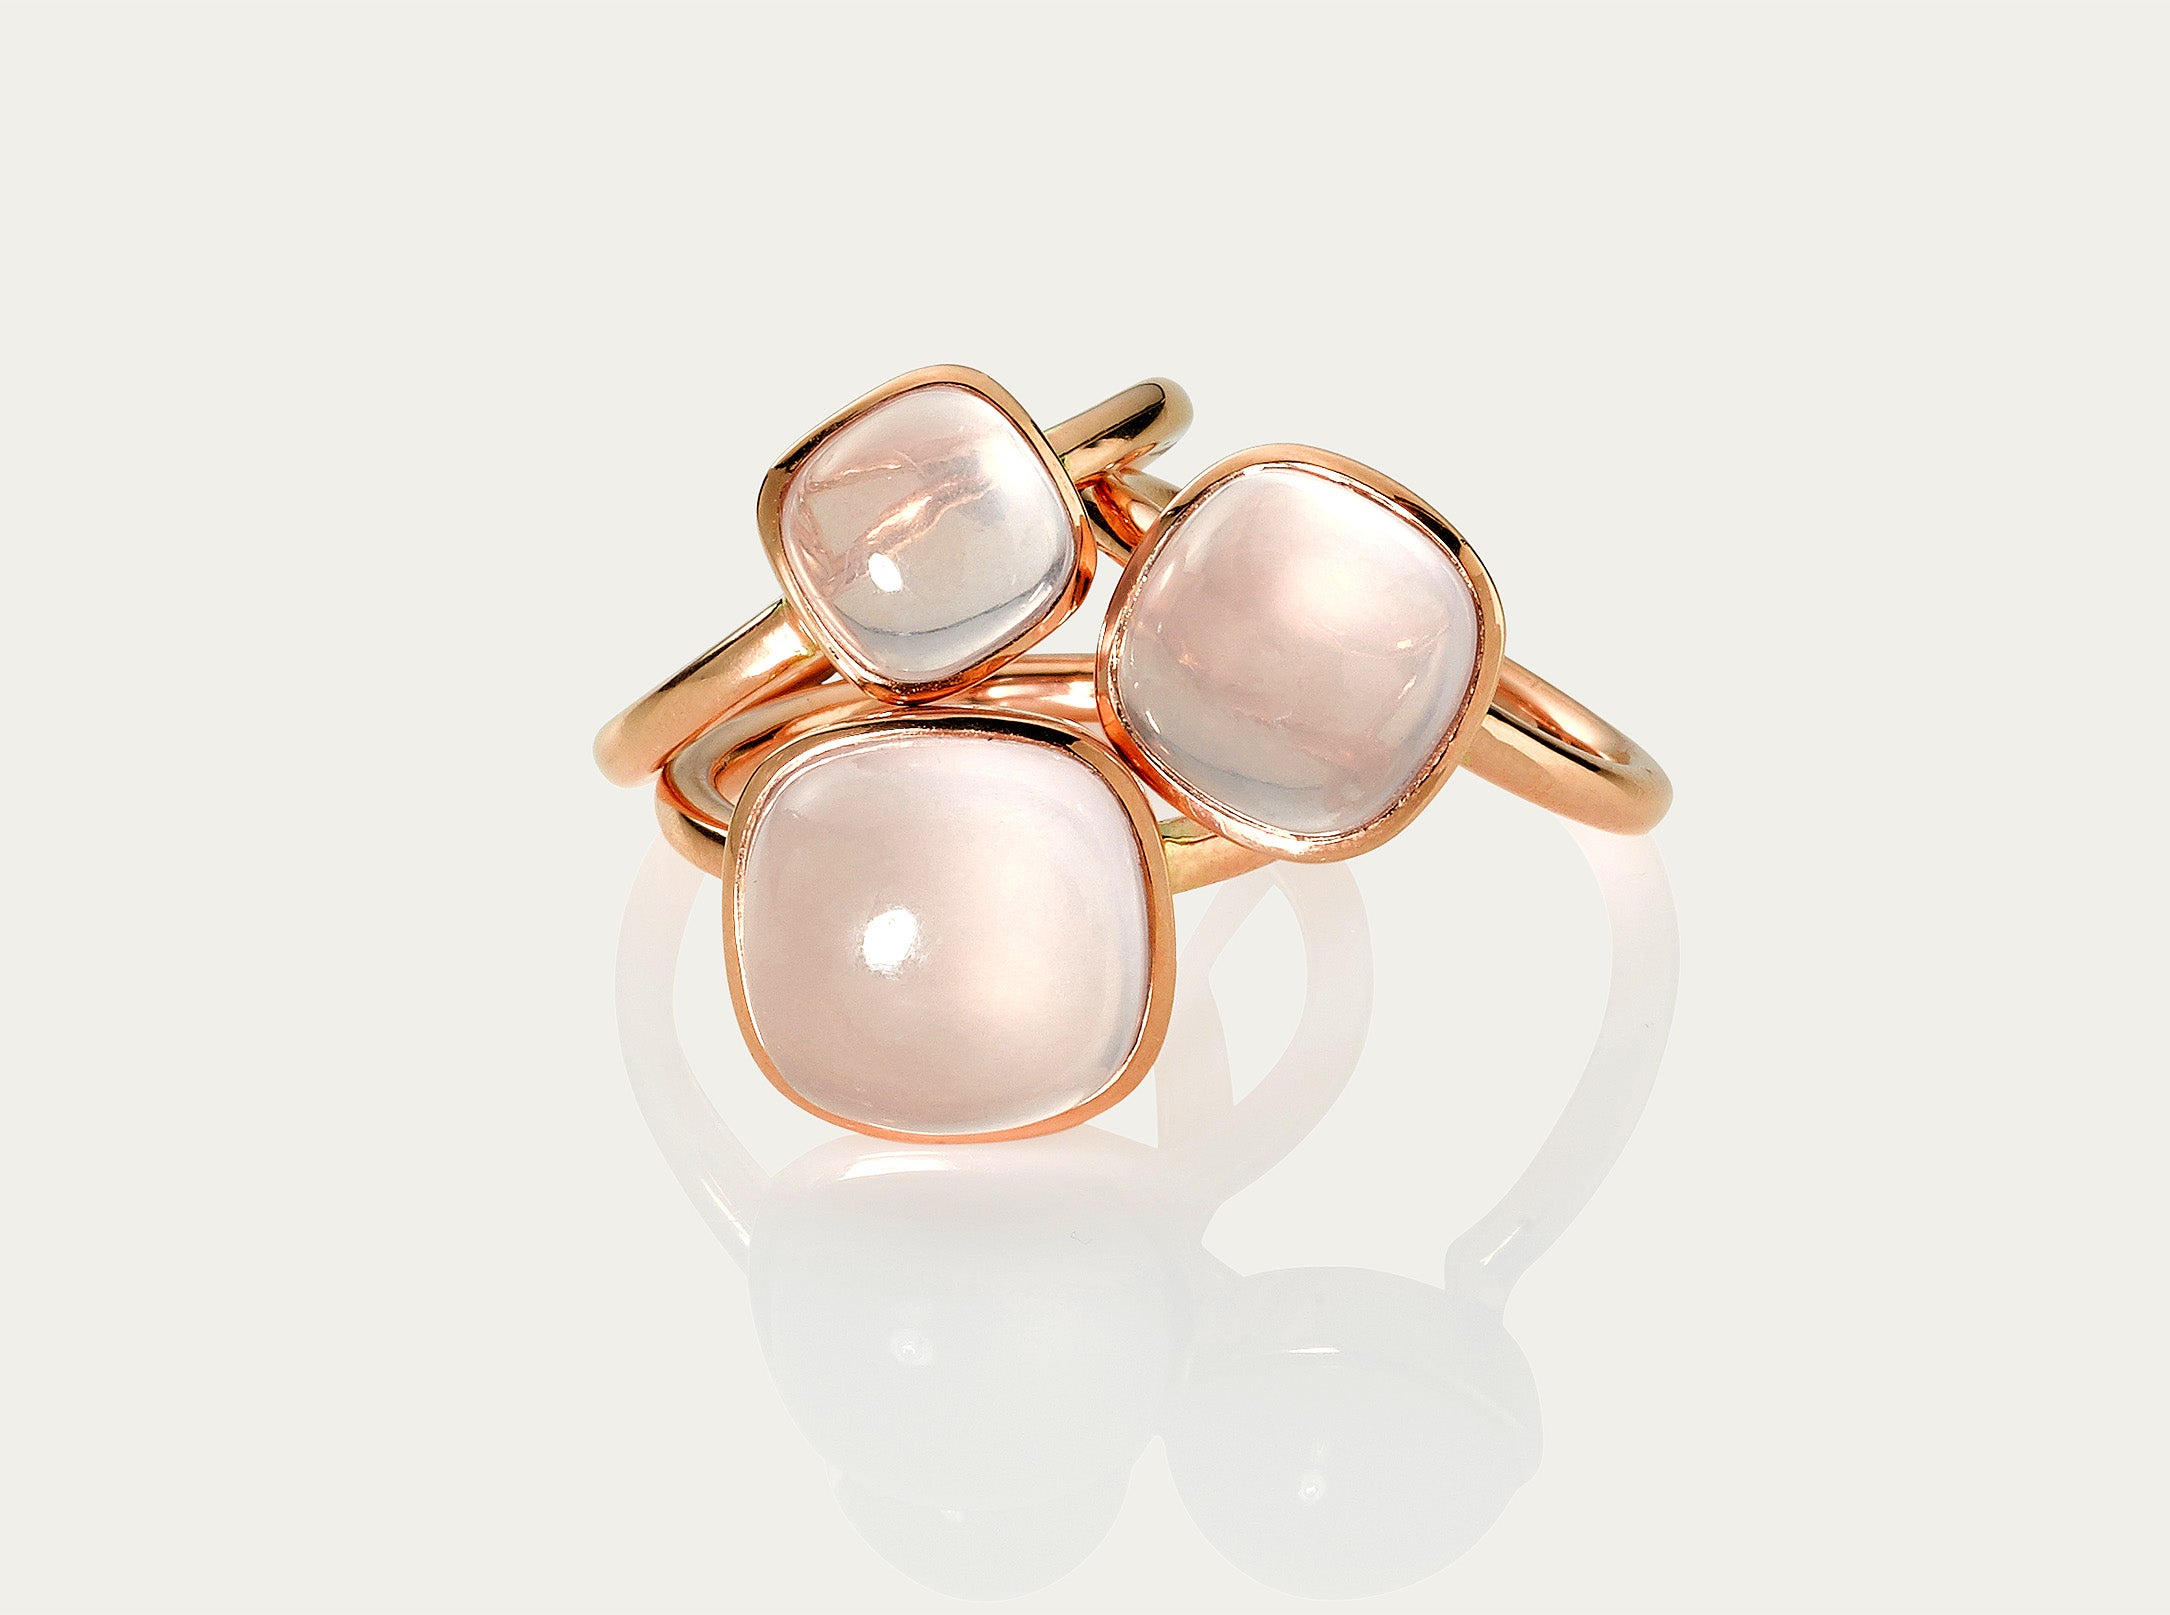 Bobo Ring Cabochon - Rose Quartz 8mm